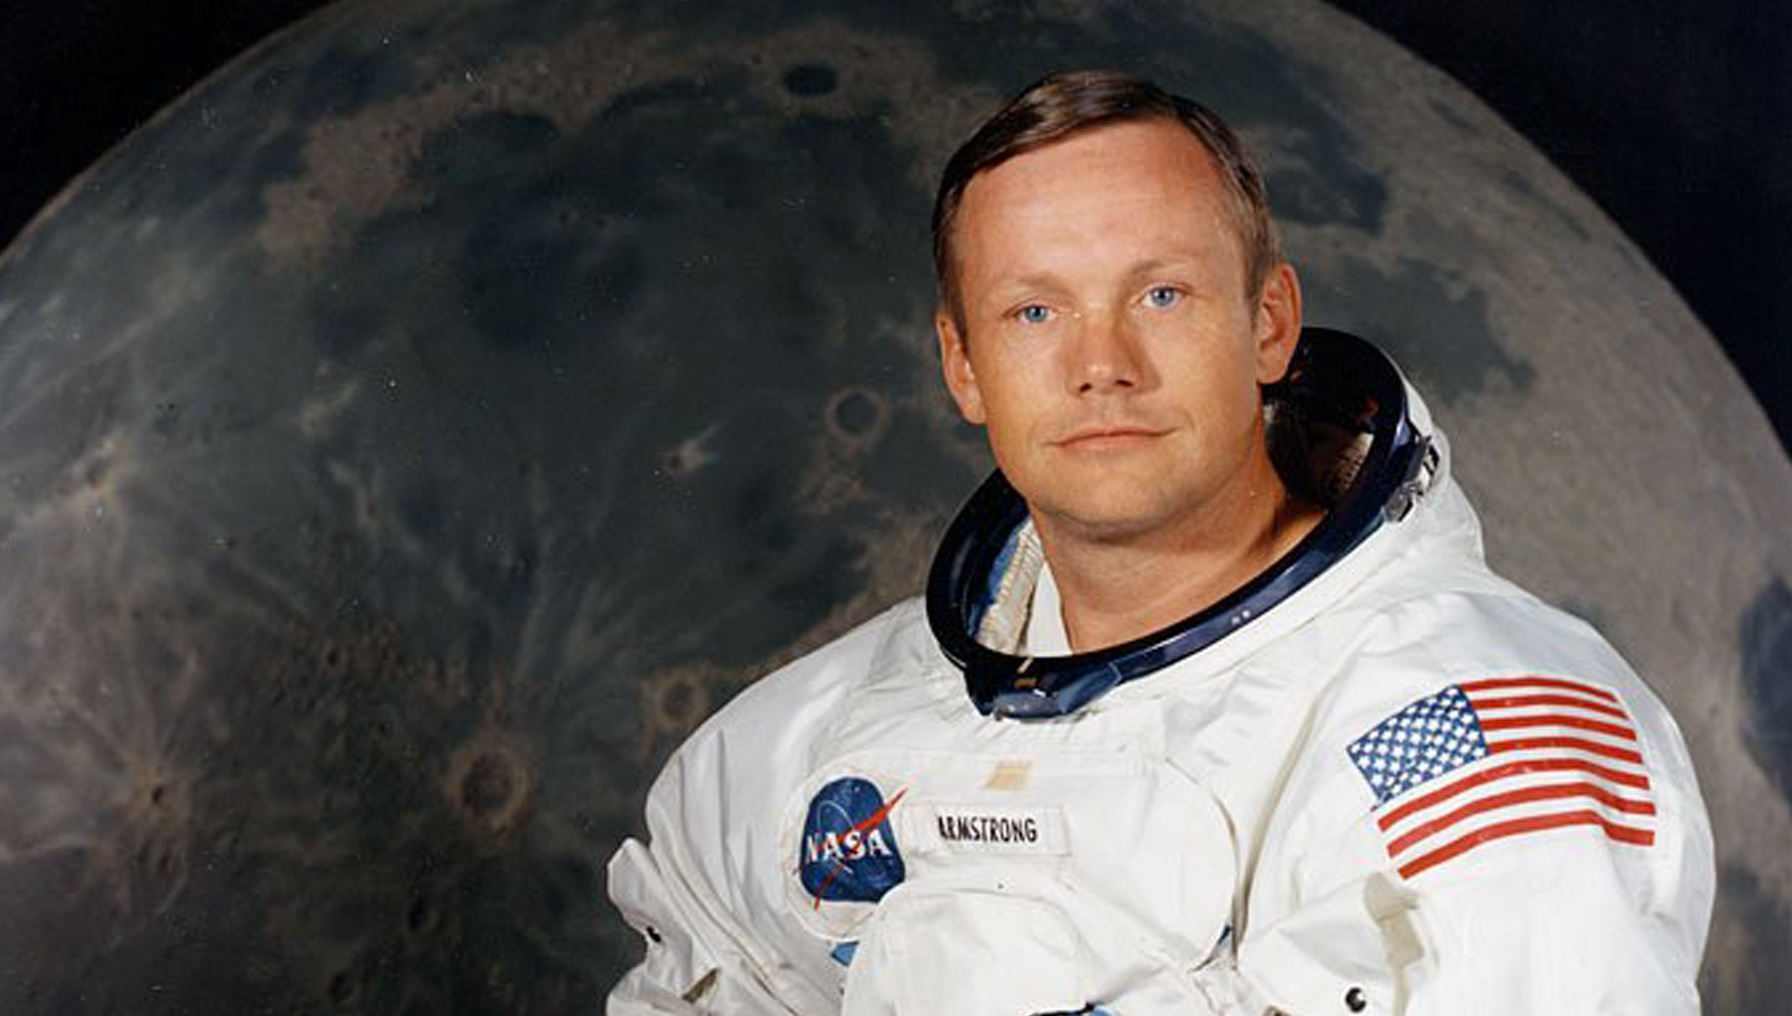 neil armstrong NASA picture